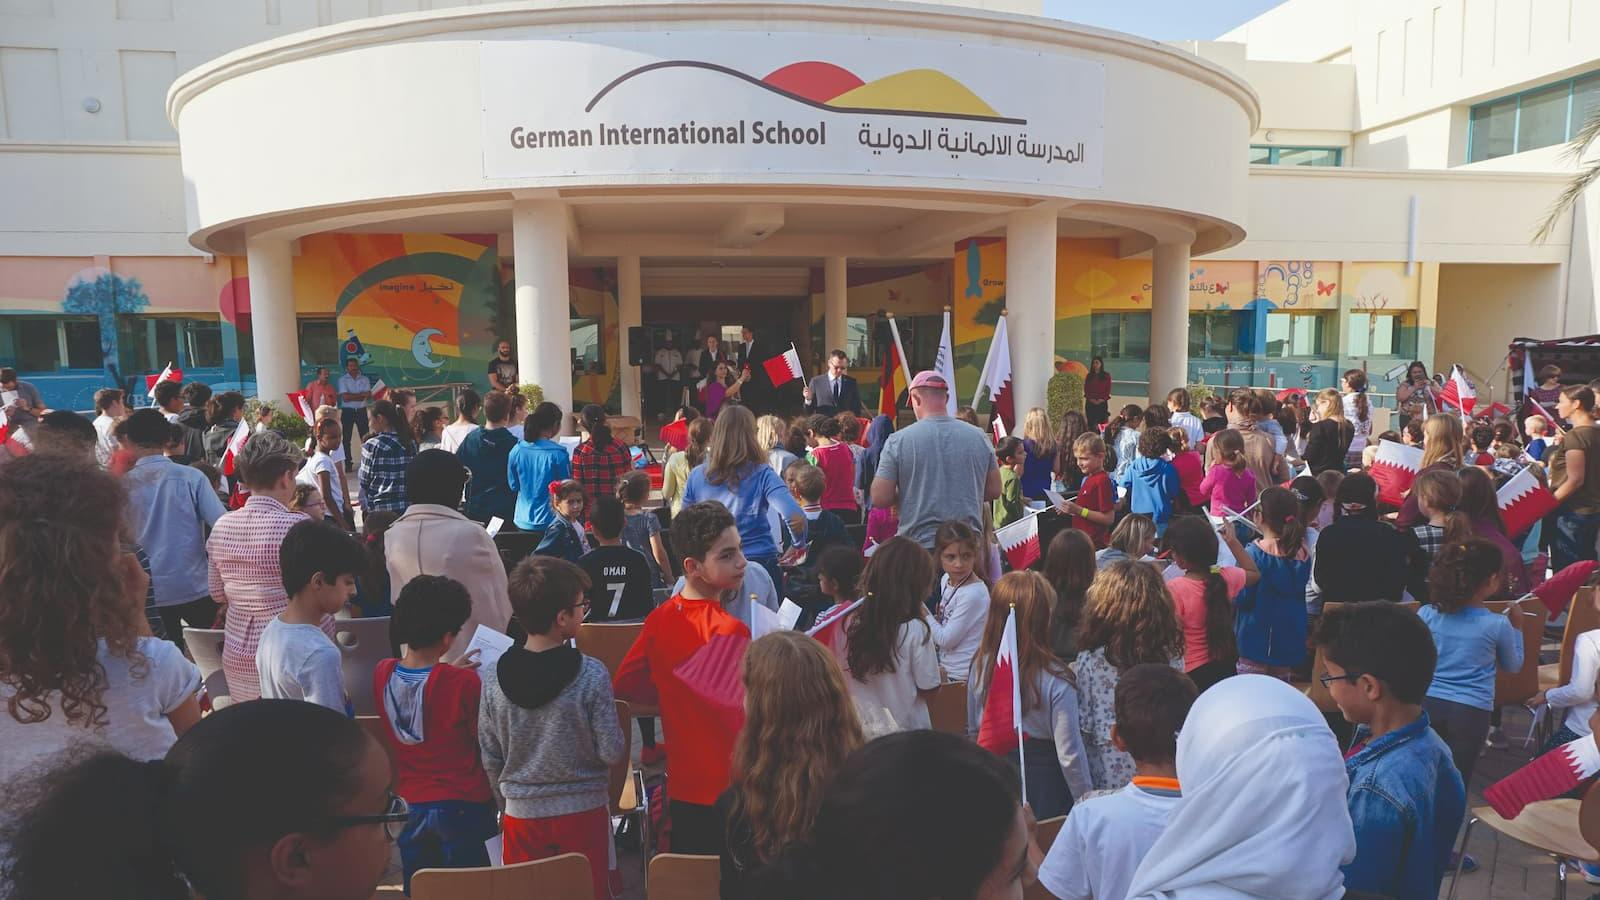 German International School provides holistic, play-based early childhood education